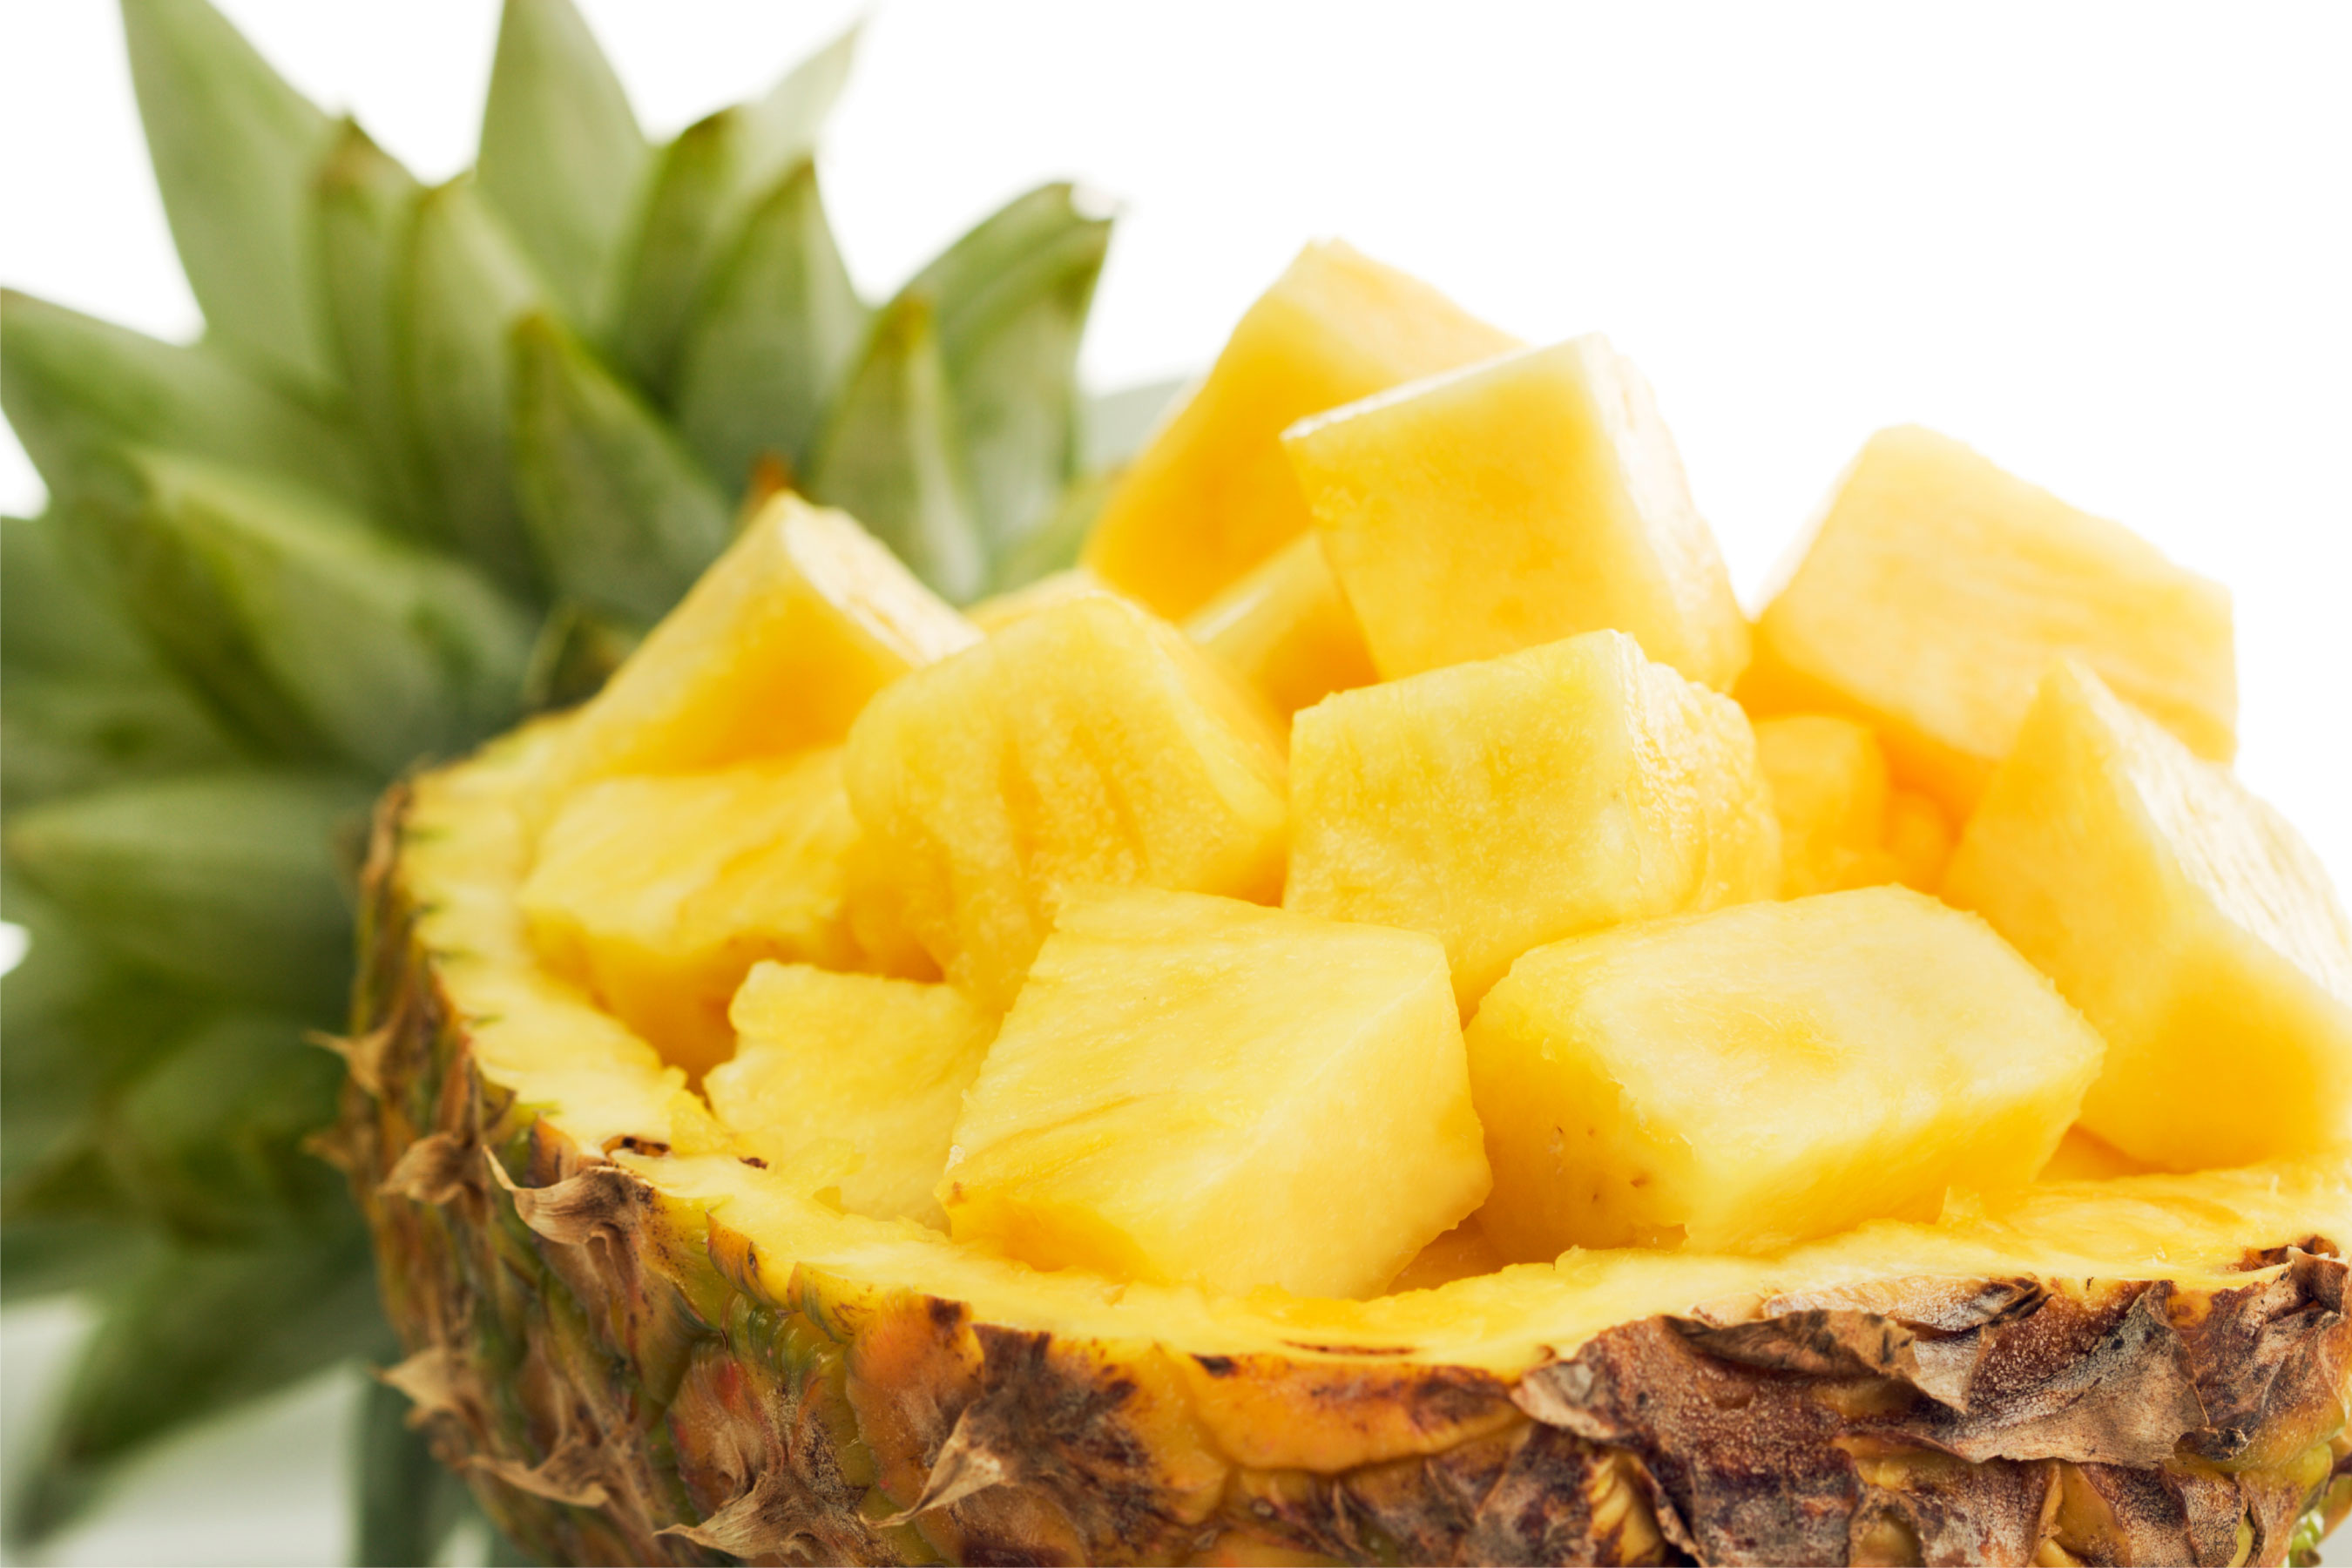 Reasons why you shouldn't throw away the pineapple core